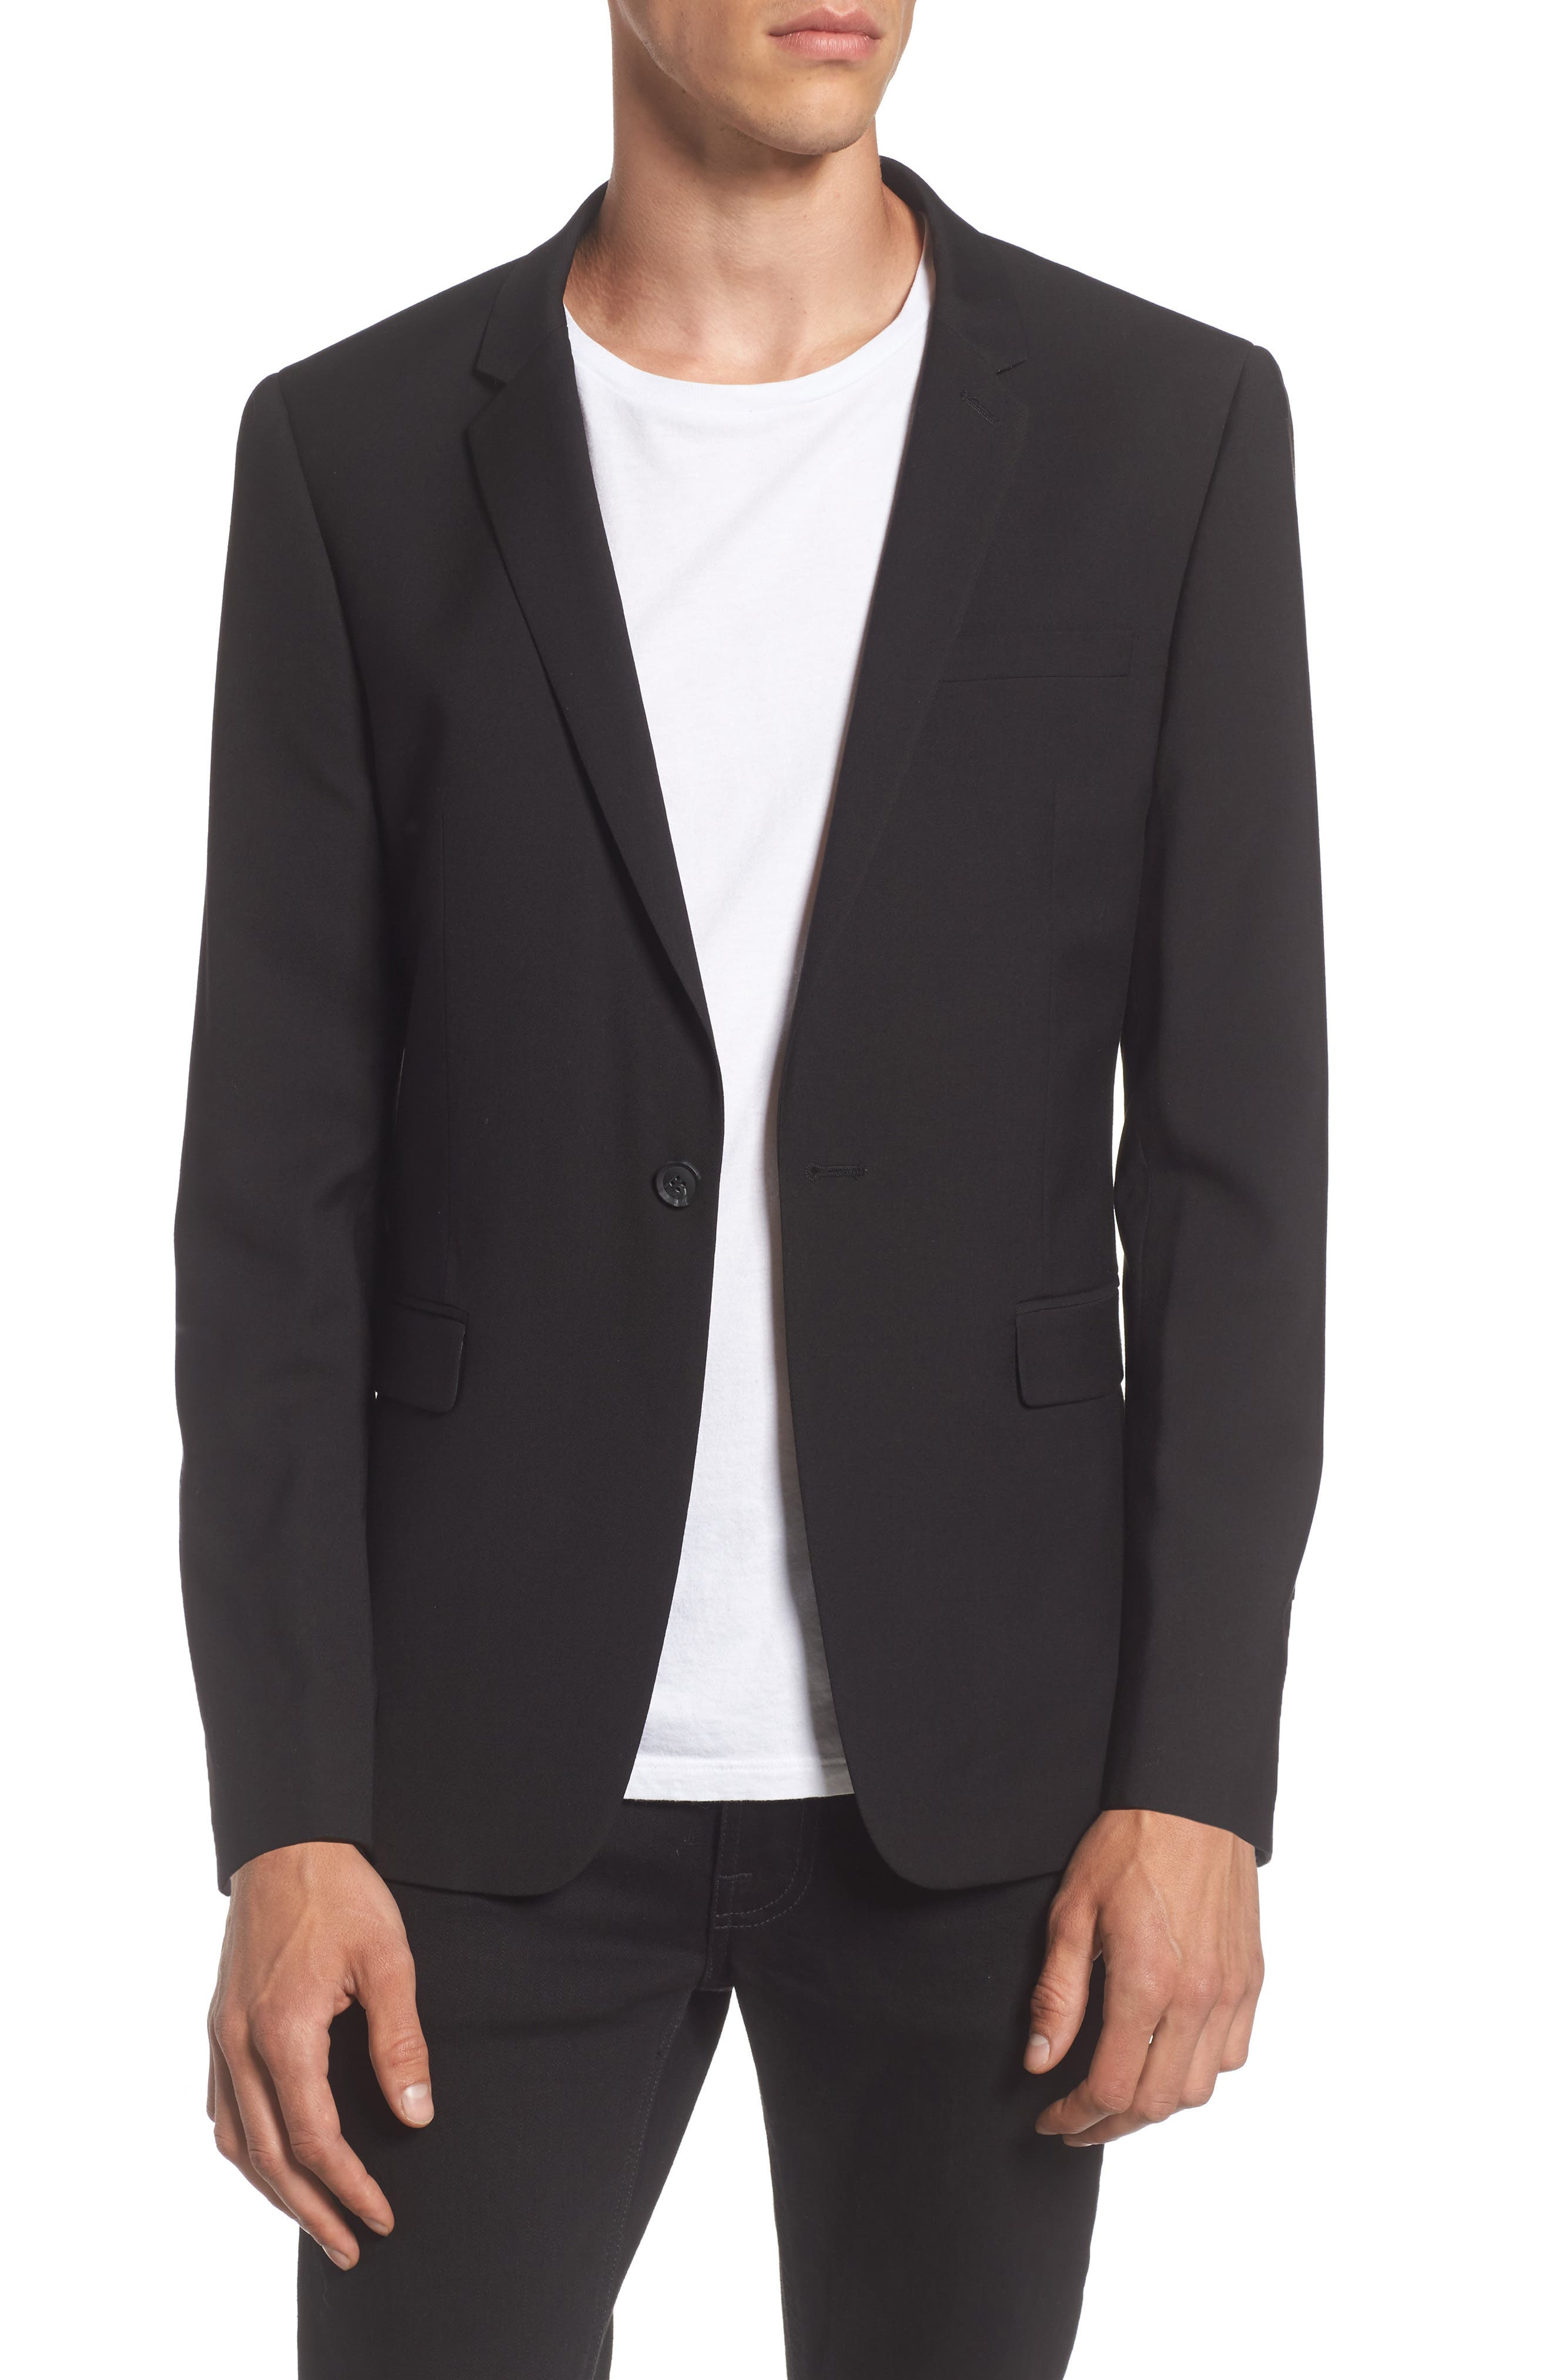 Ultra Skinny Black Suit Jacket,                             Alternate thumbnail 2, color,                             BLACK